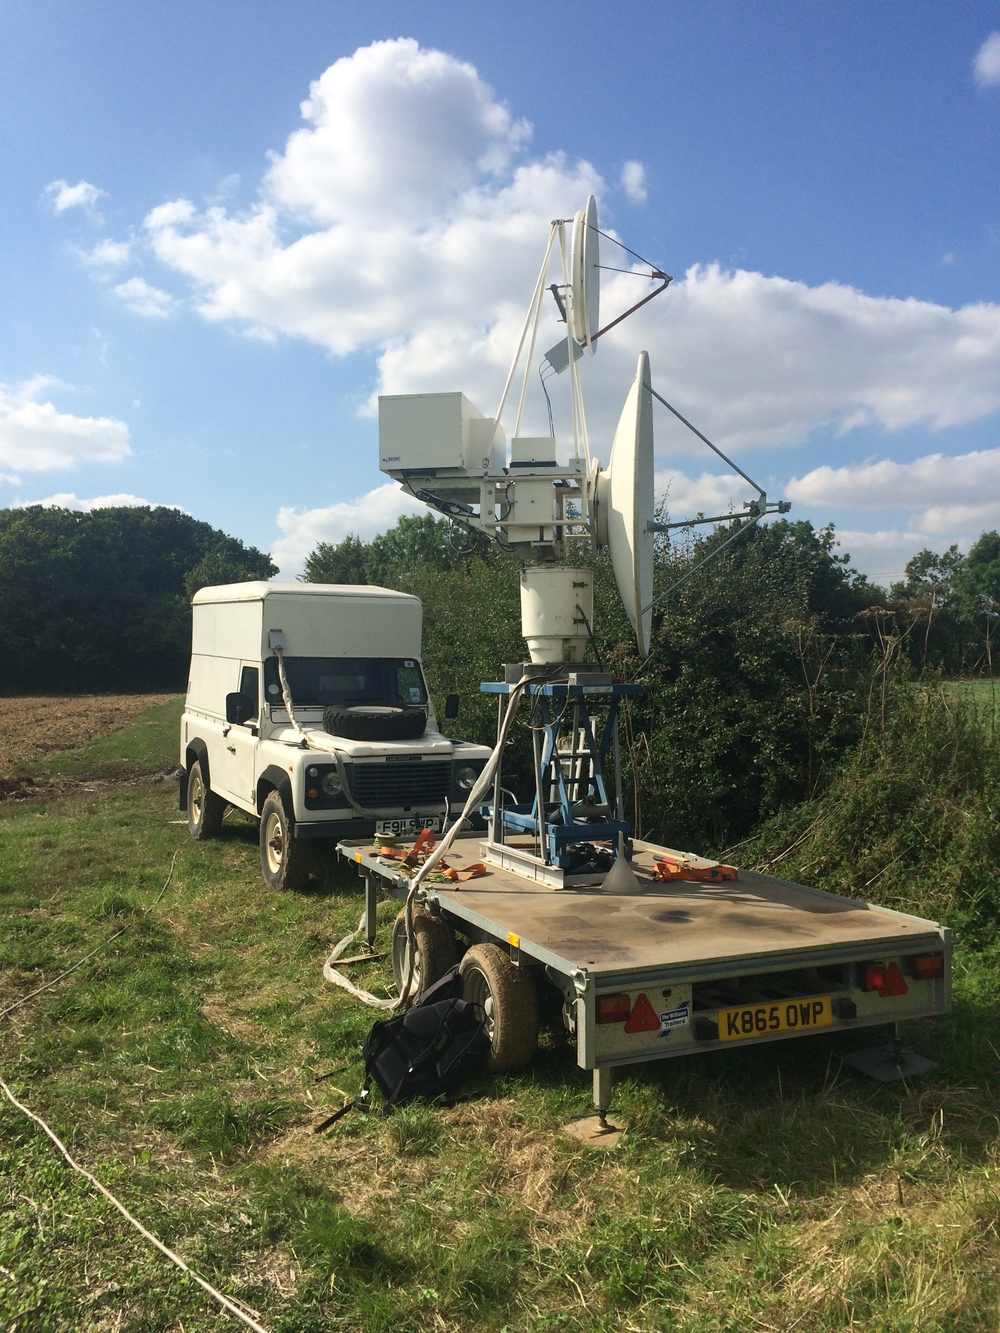 The trailer-mounted harmonic radar at Rothamsted Research.